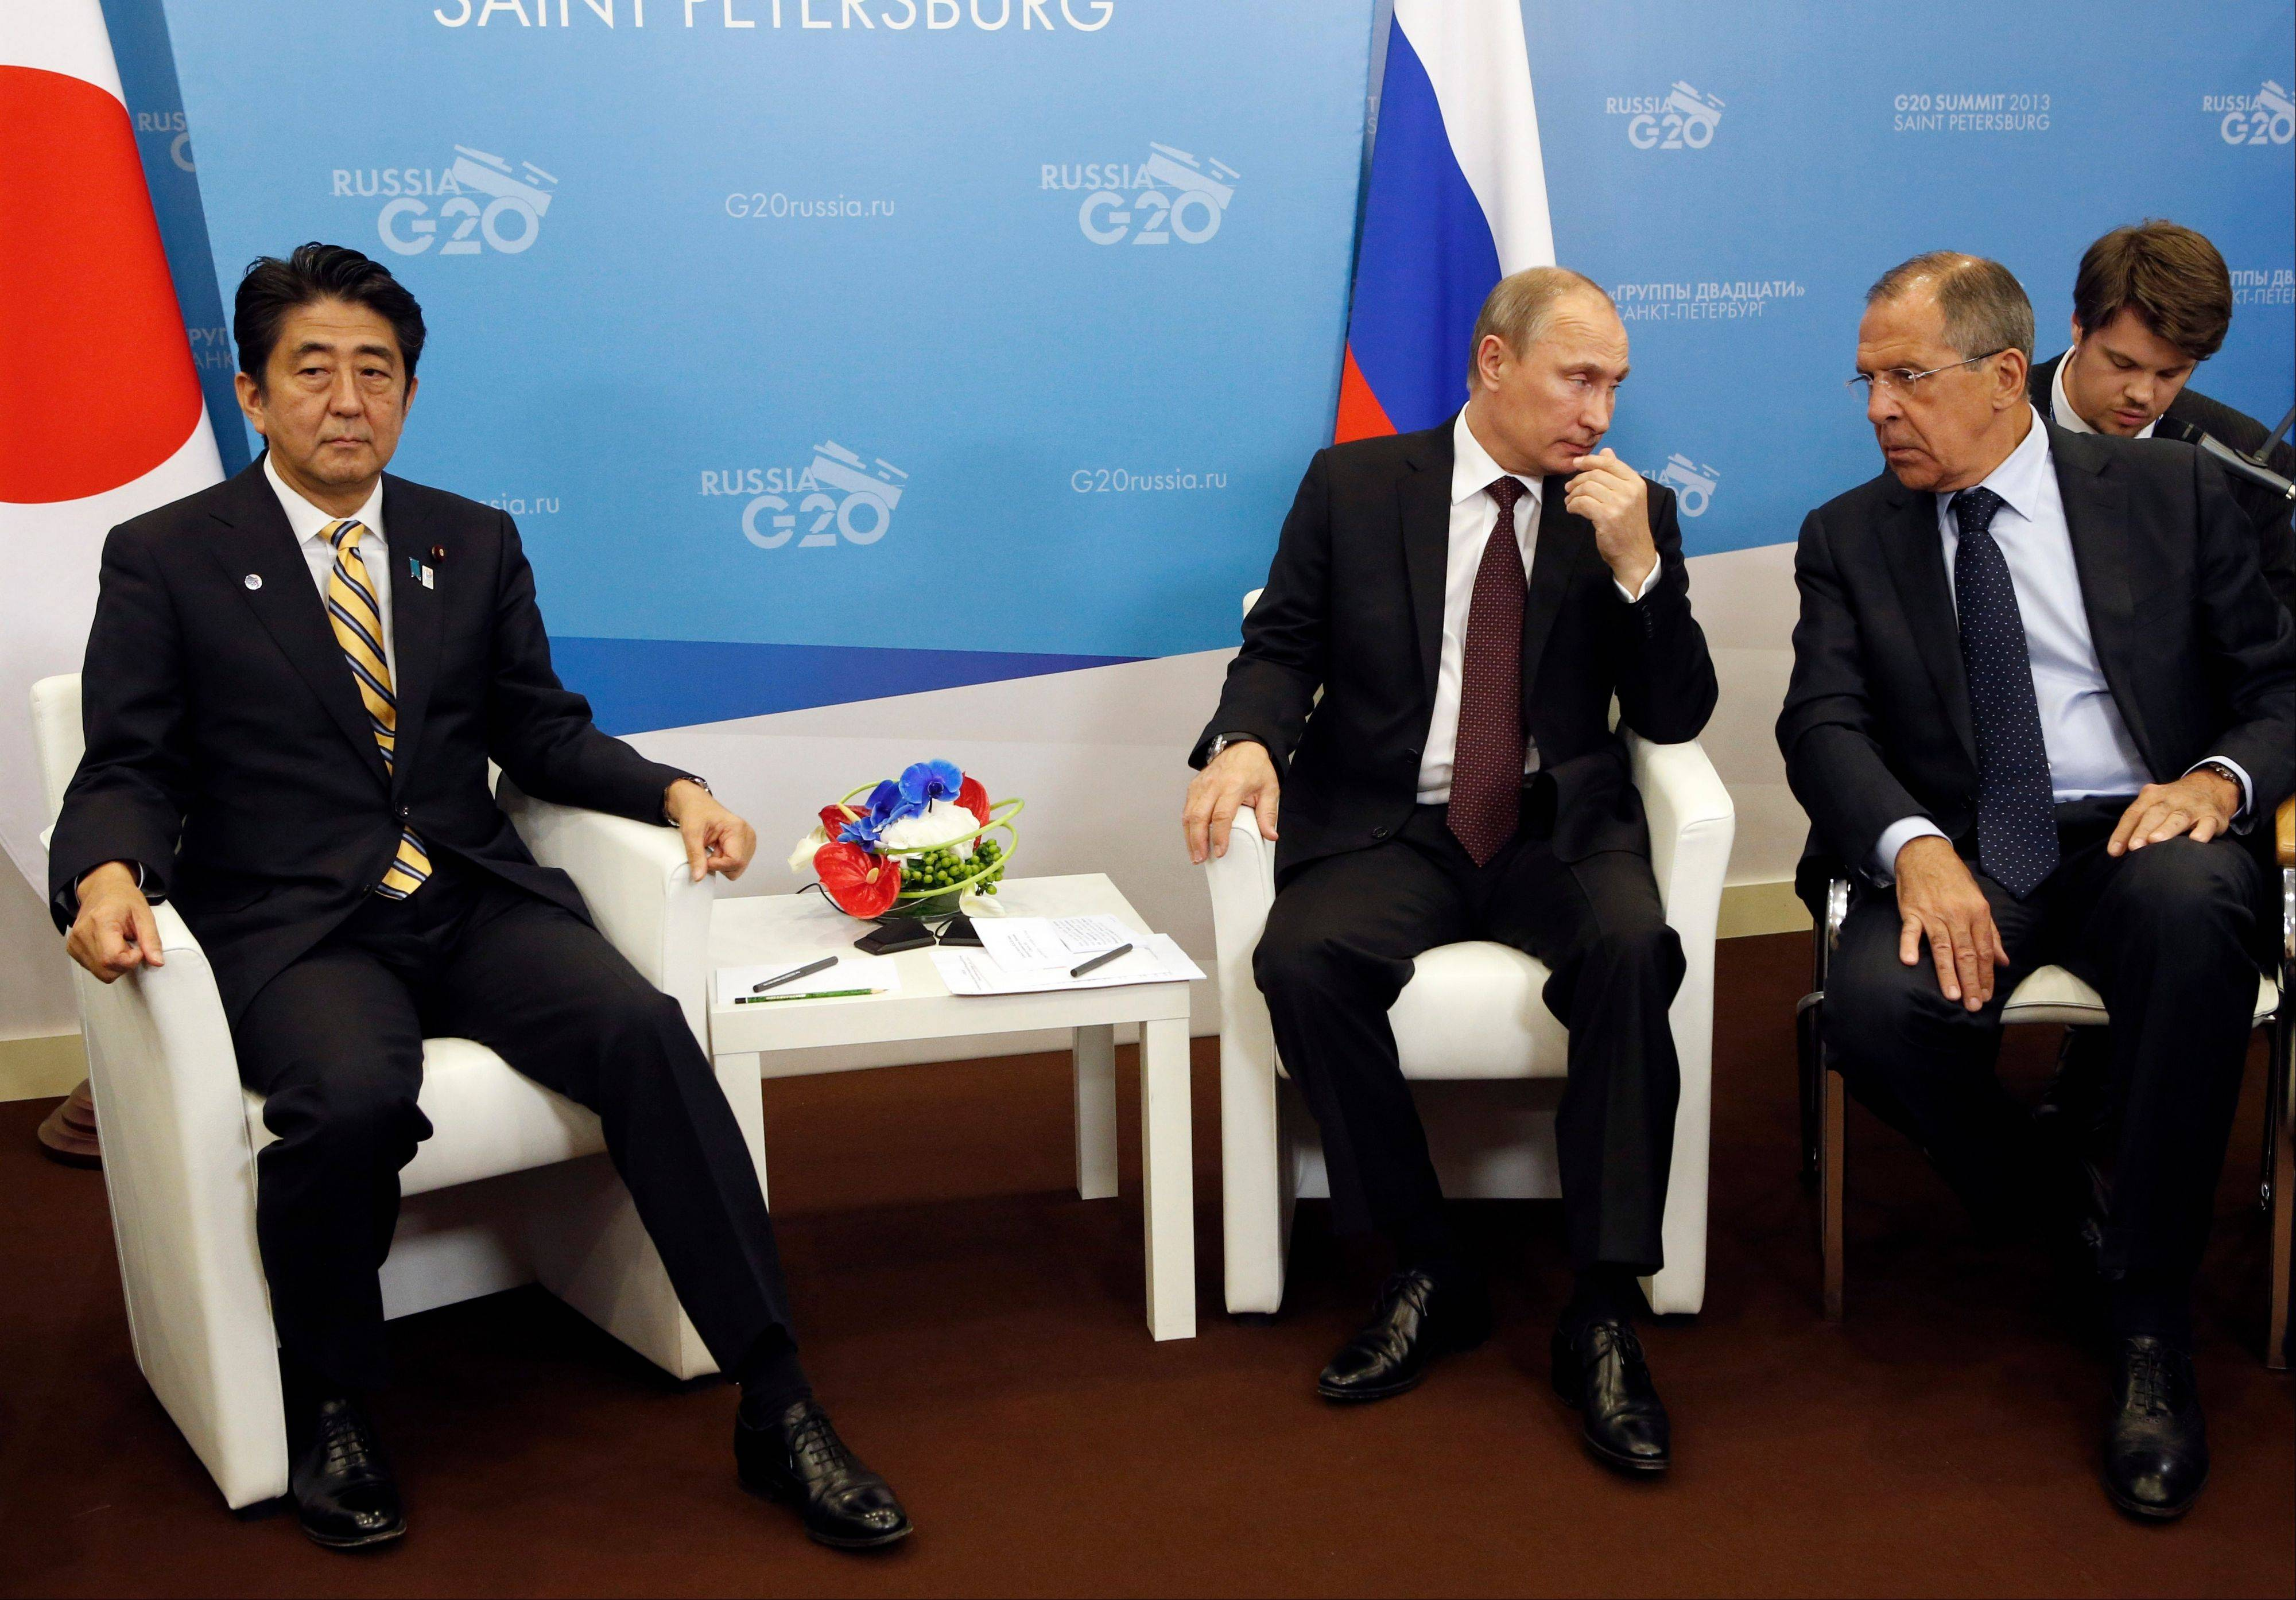 Russia's President Vladimir Putin, third from right, speaks Thursday with Russian Foreign Minister Sergey Lavrov, second from right, while meeting with Japan's Prime Minister Shinzo Abe, left, on the sidelines of a G-20 summit in St. Petersburg, Russia.